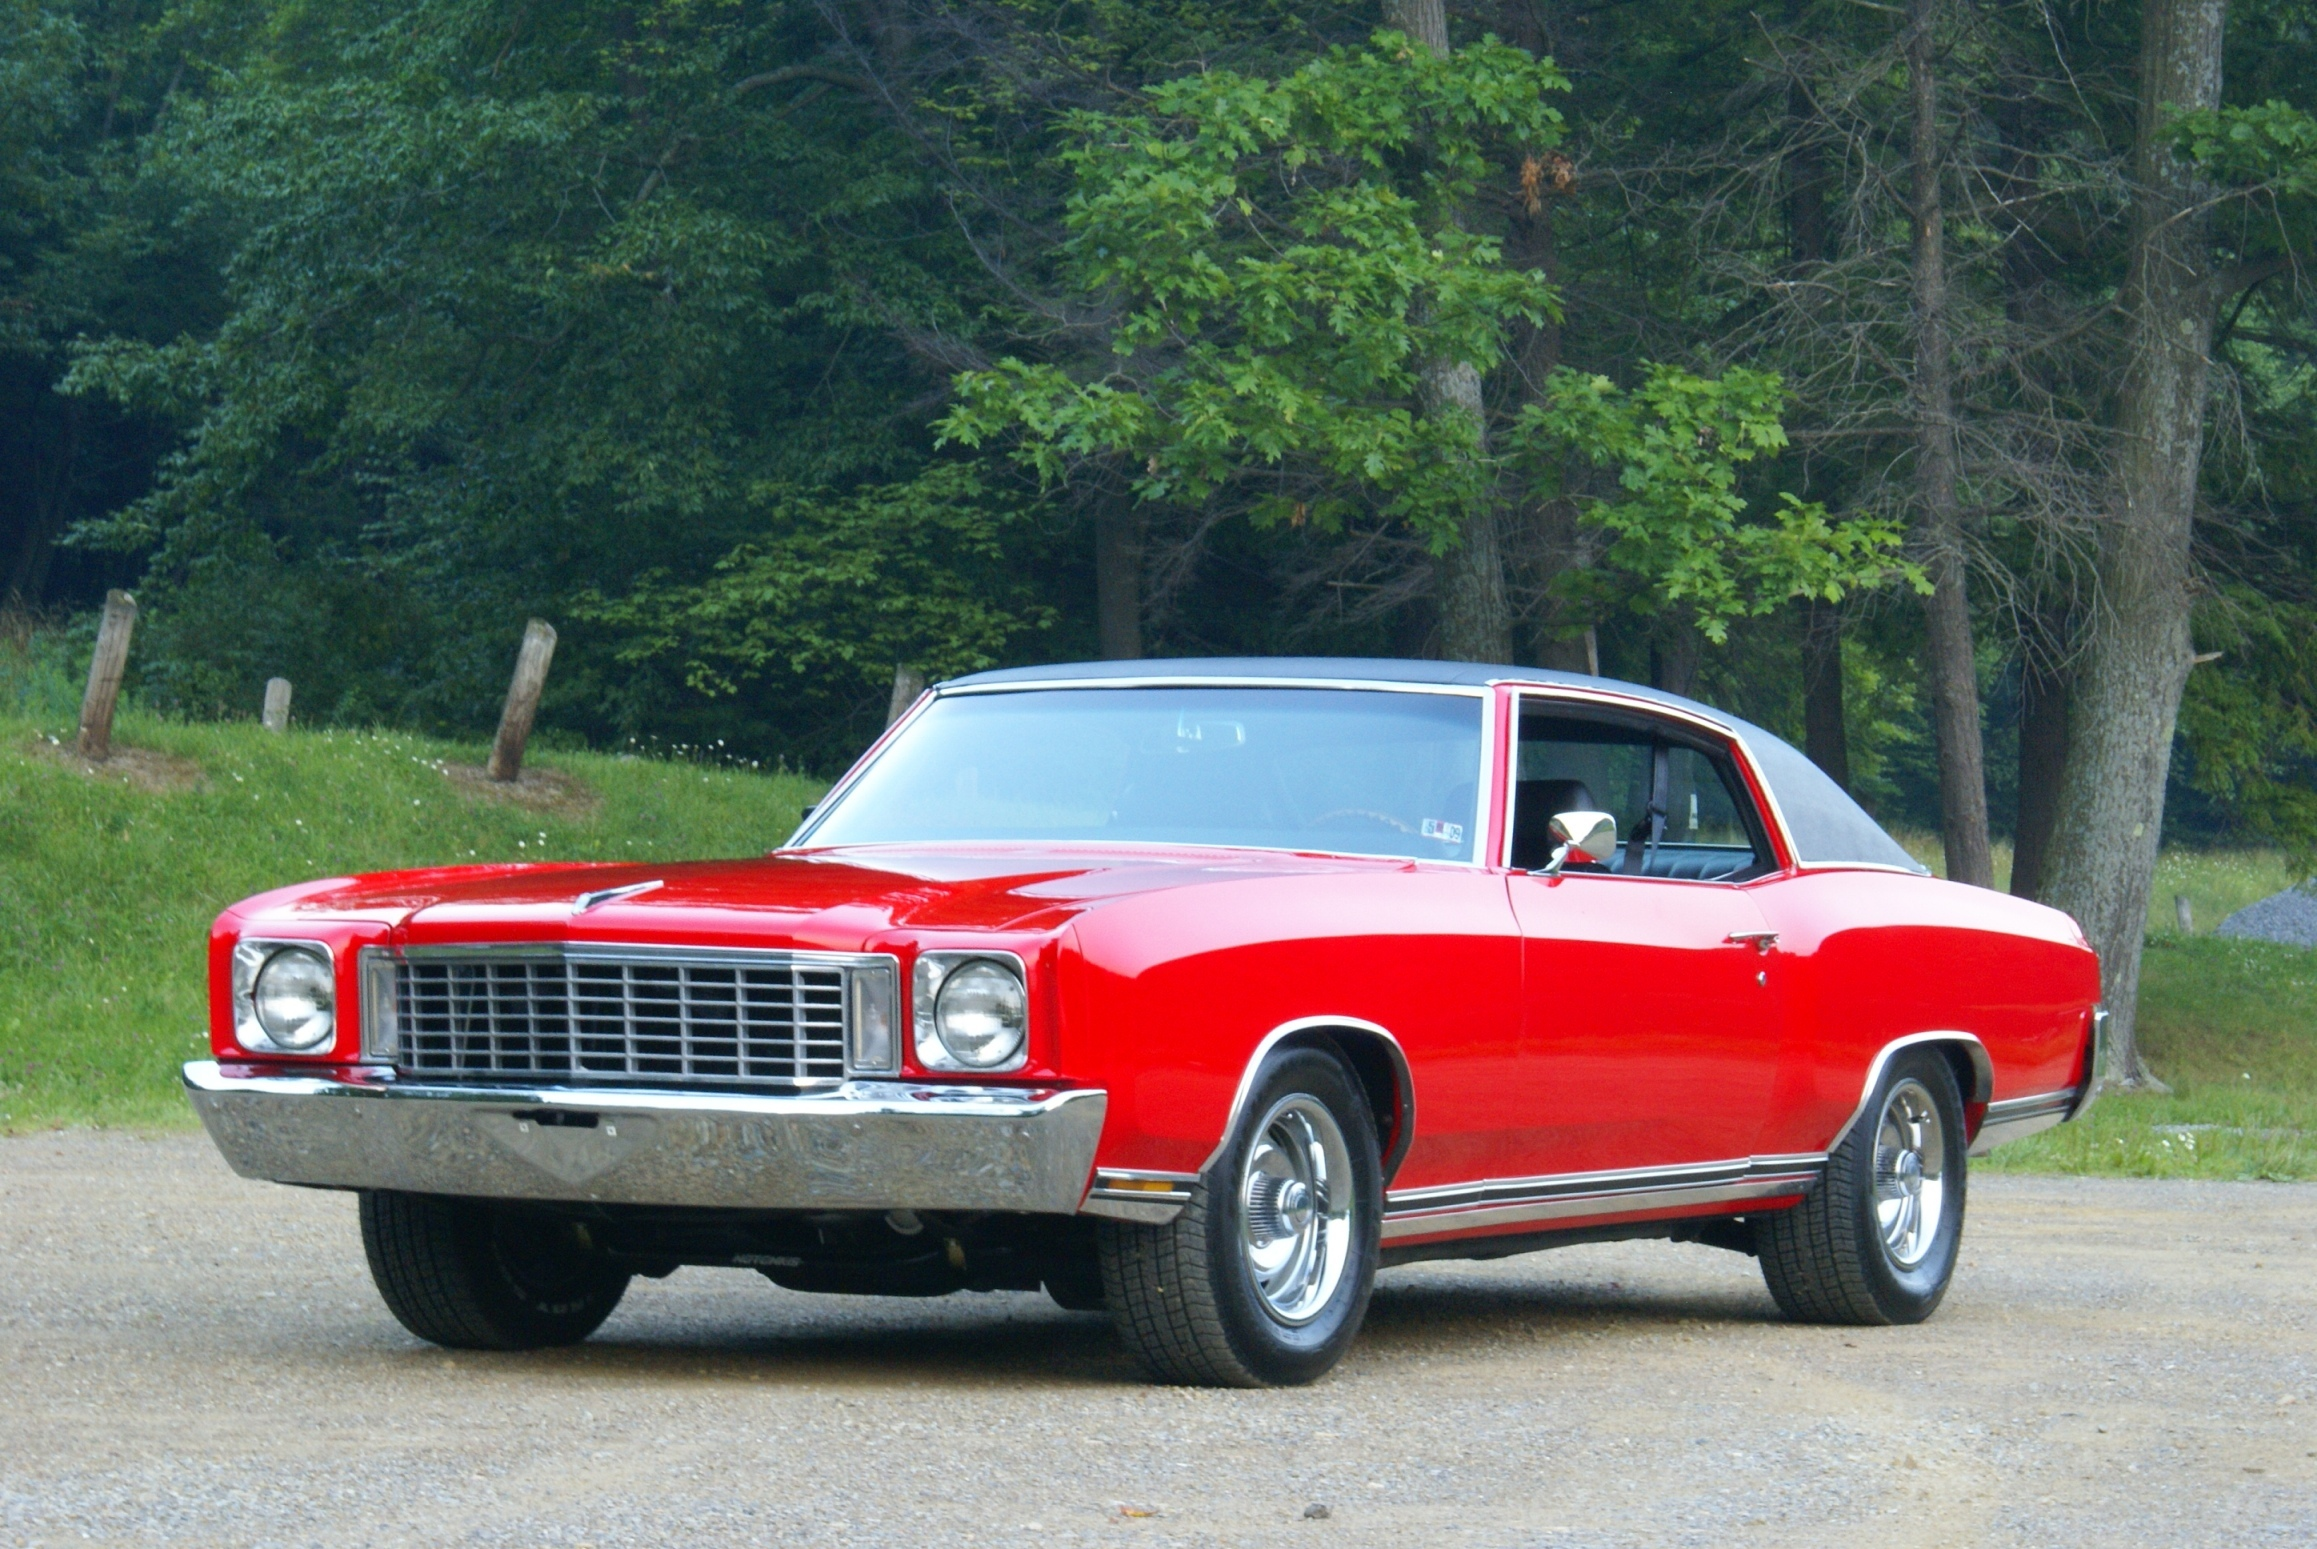 mjhbah 1972 chevrolet monte carlo specs photos modification info at cardomain. Black Bedroom Furniture Sets. Home Design Ideas